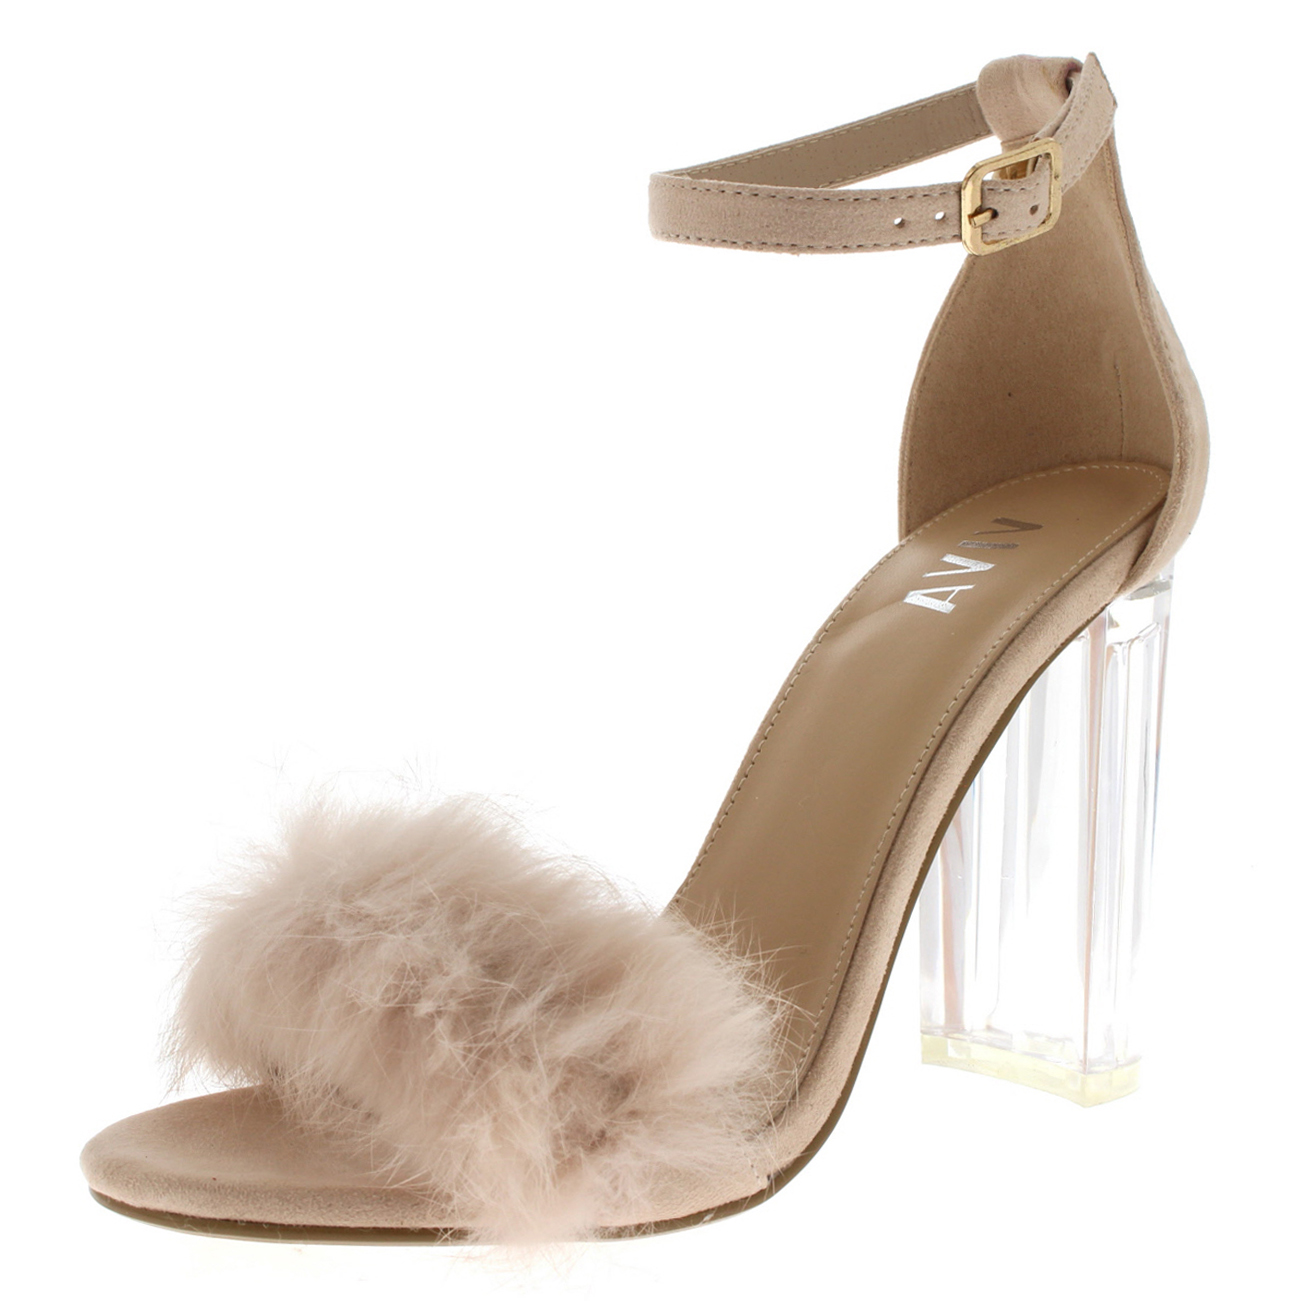 090d7ee54c Womens Fluffy Glass Block Heel Party Cut Out Fashion High Heels ...